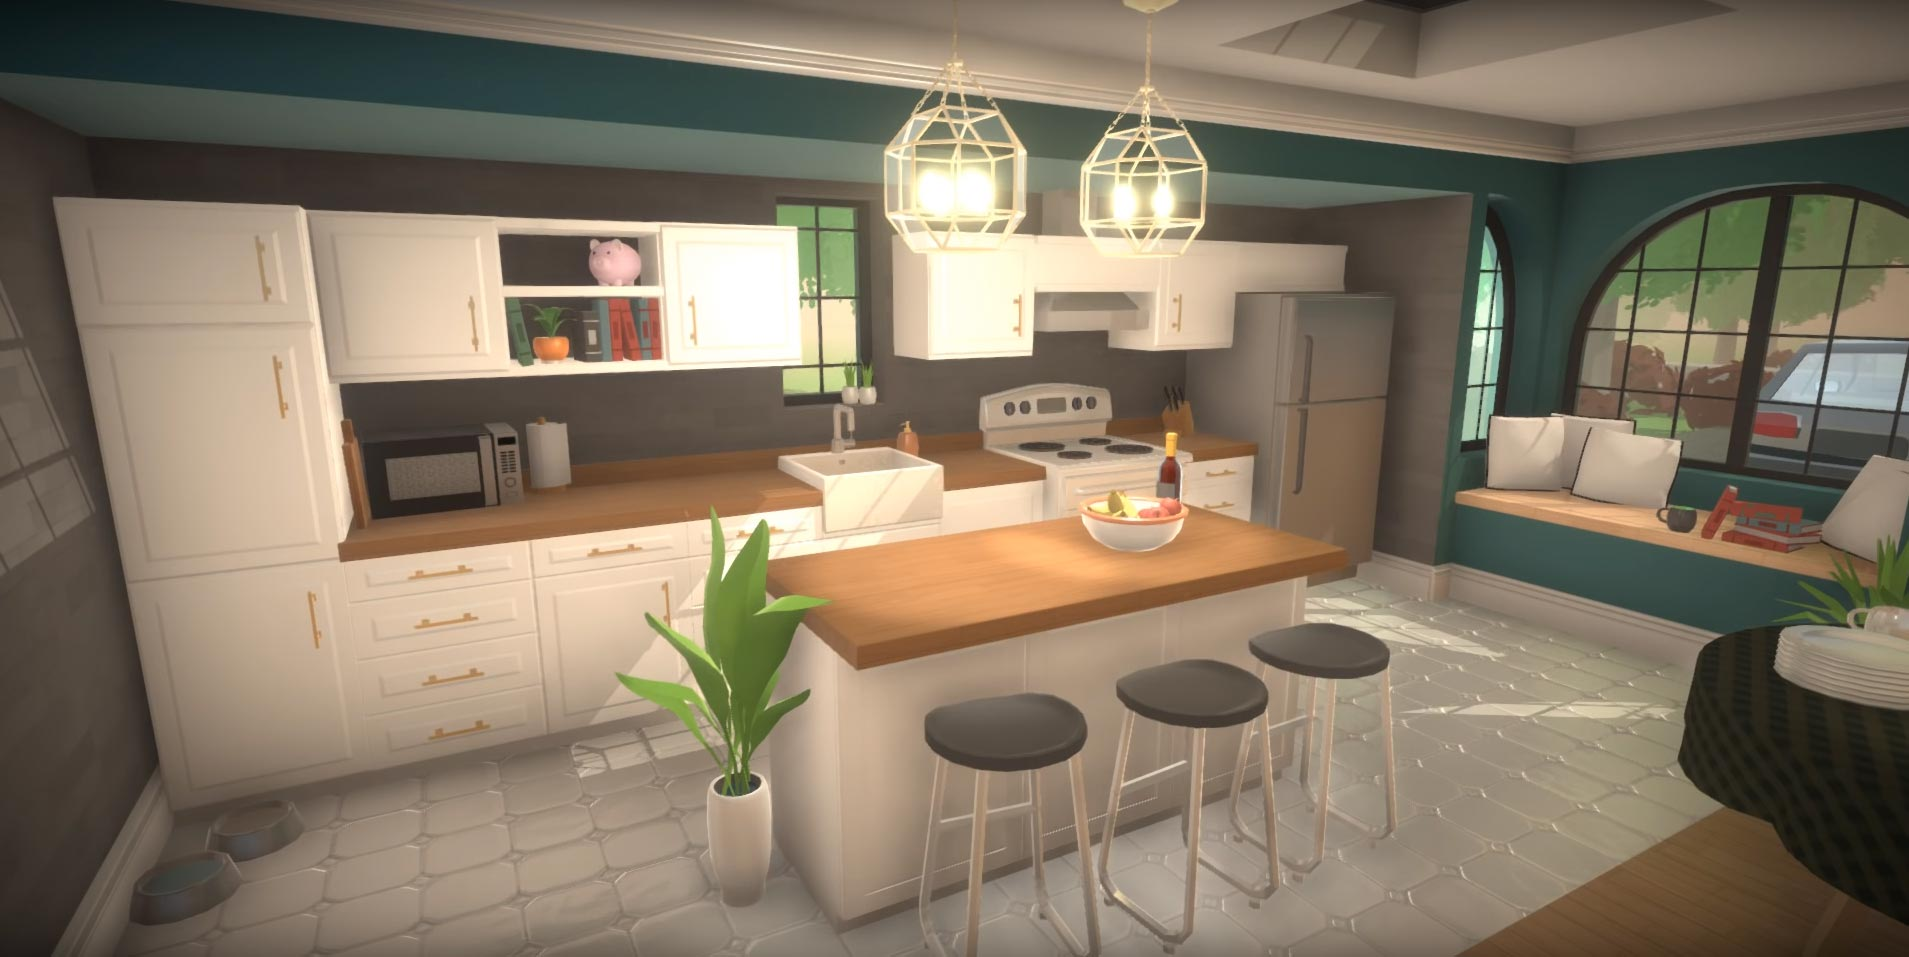 Thanksgiving update: Kitchens and Colour Wheels